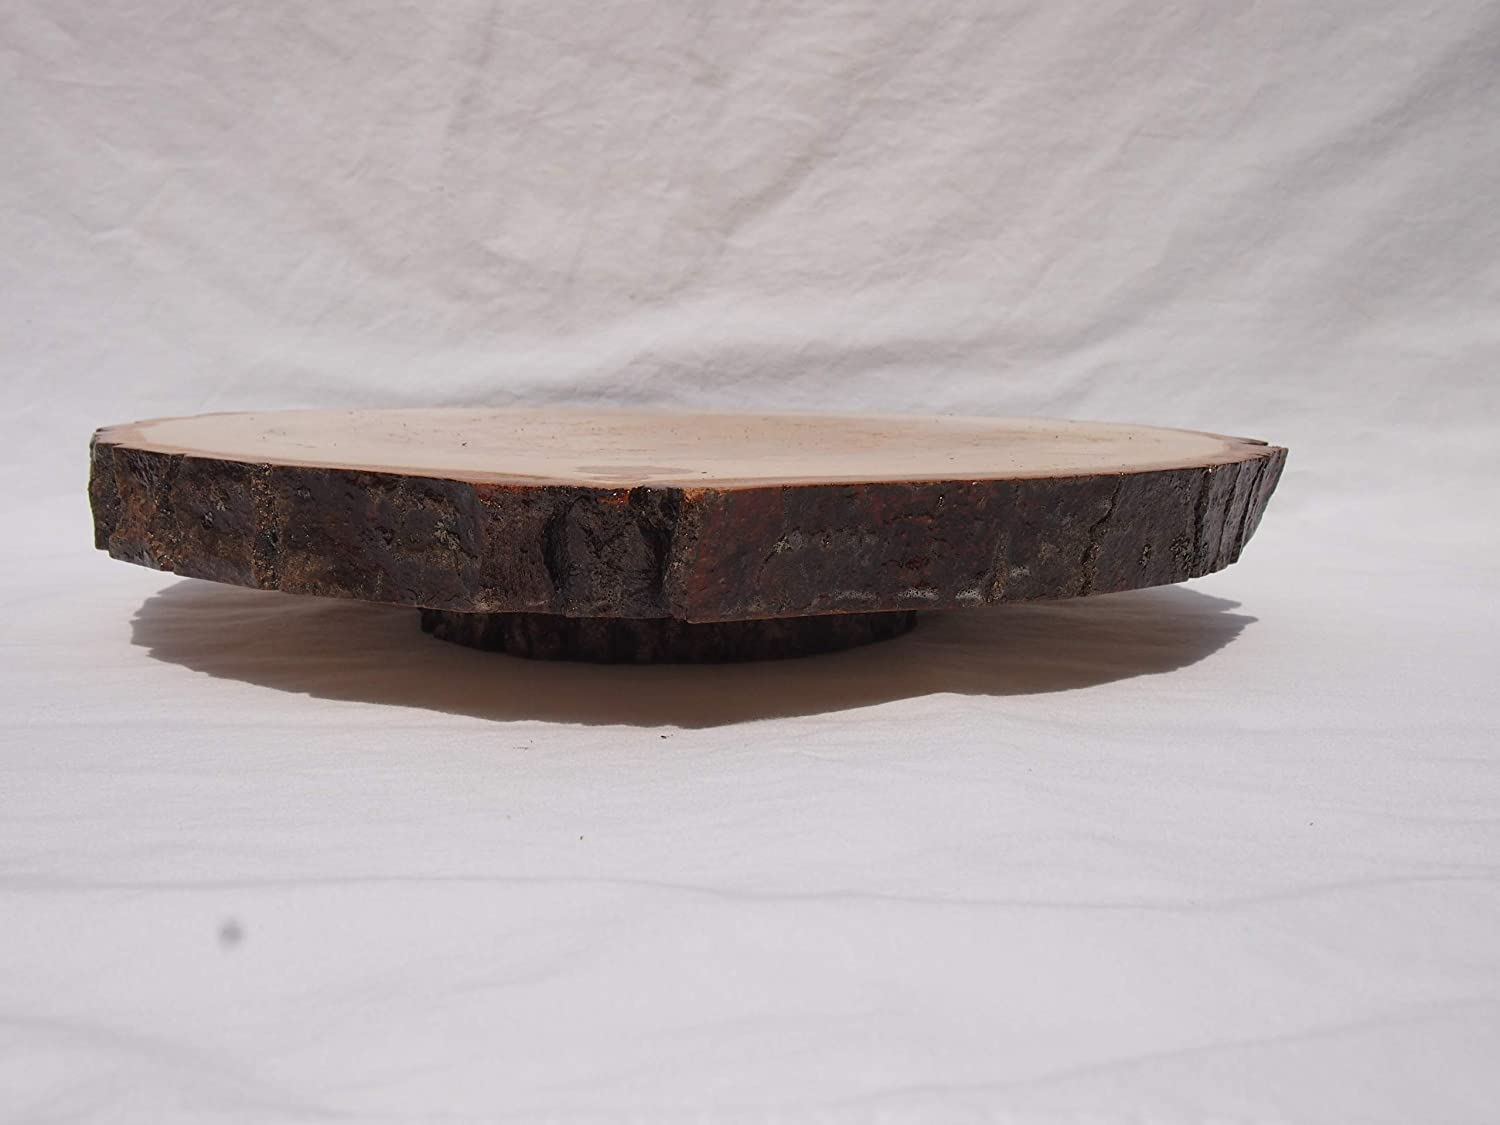 display stand 12.5 by 13.5 Aspen tree slice Lazy Susan table centerpiece